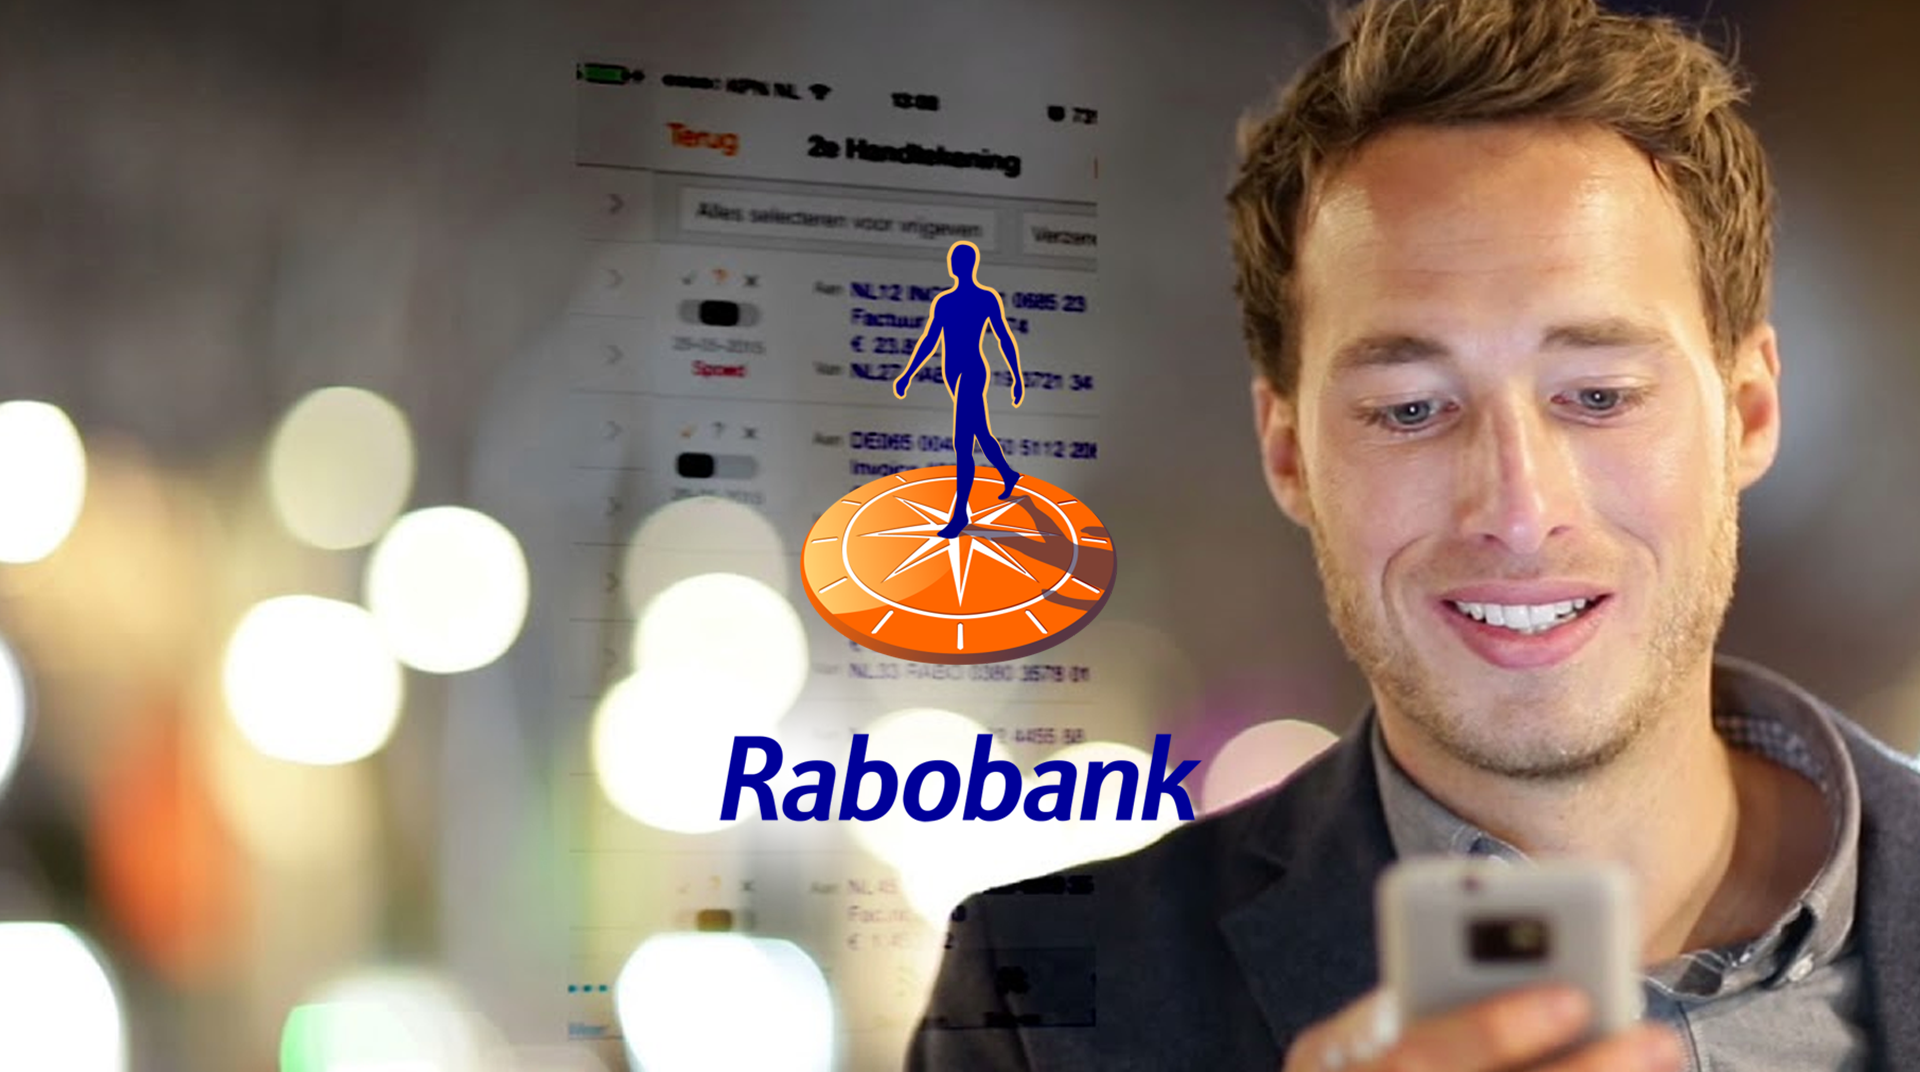 Rabobank   Digital disruption in banking with a data-driven experience